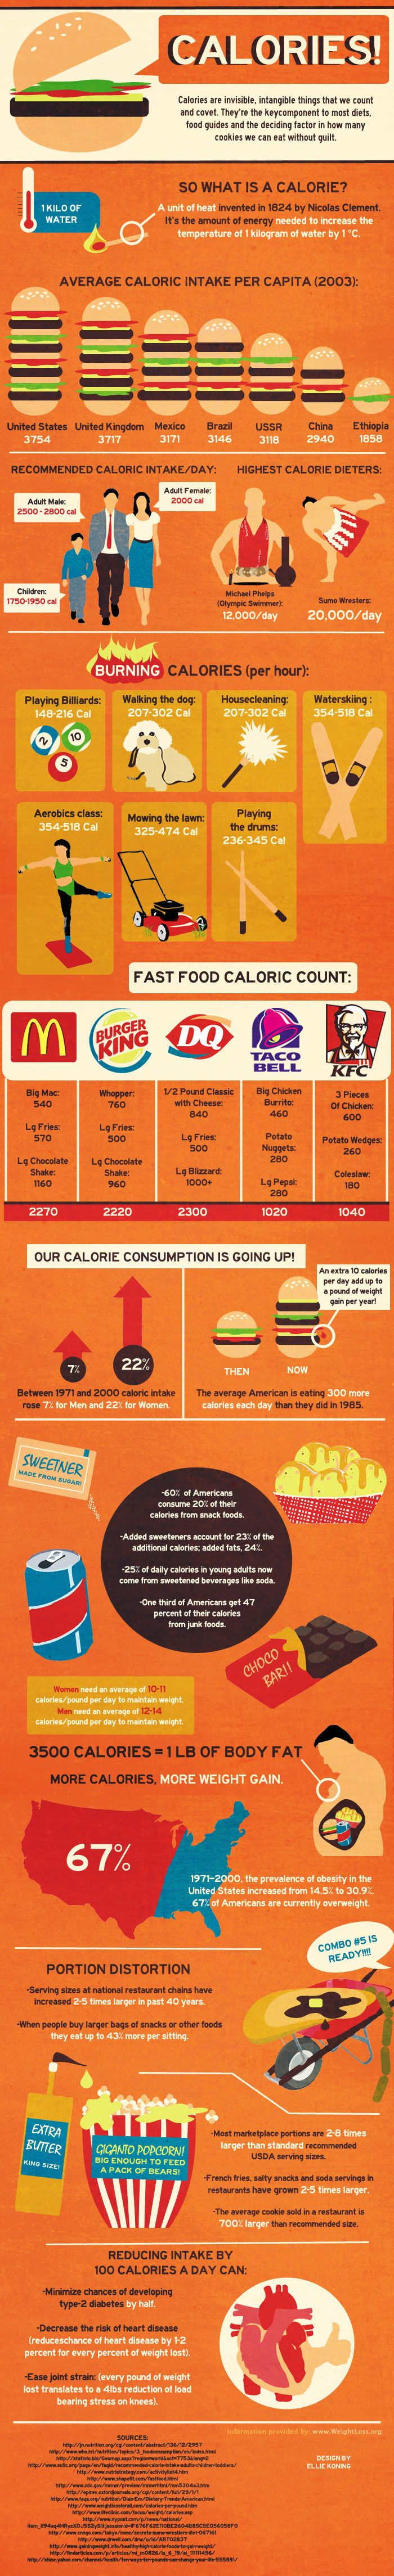 The Cost of Calories Infographic - Bulletin Board/Poster